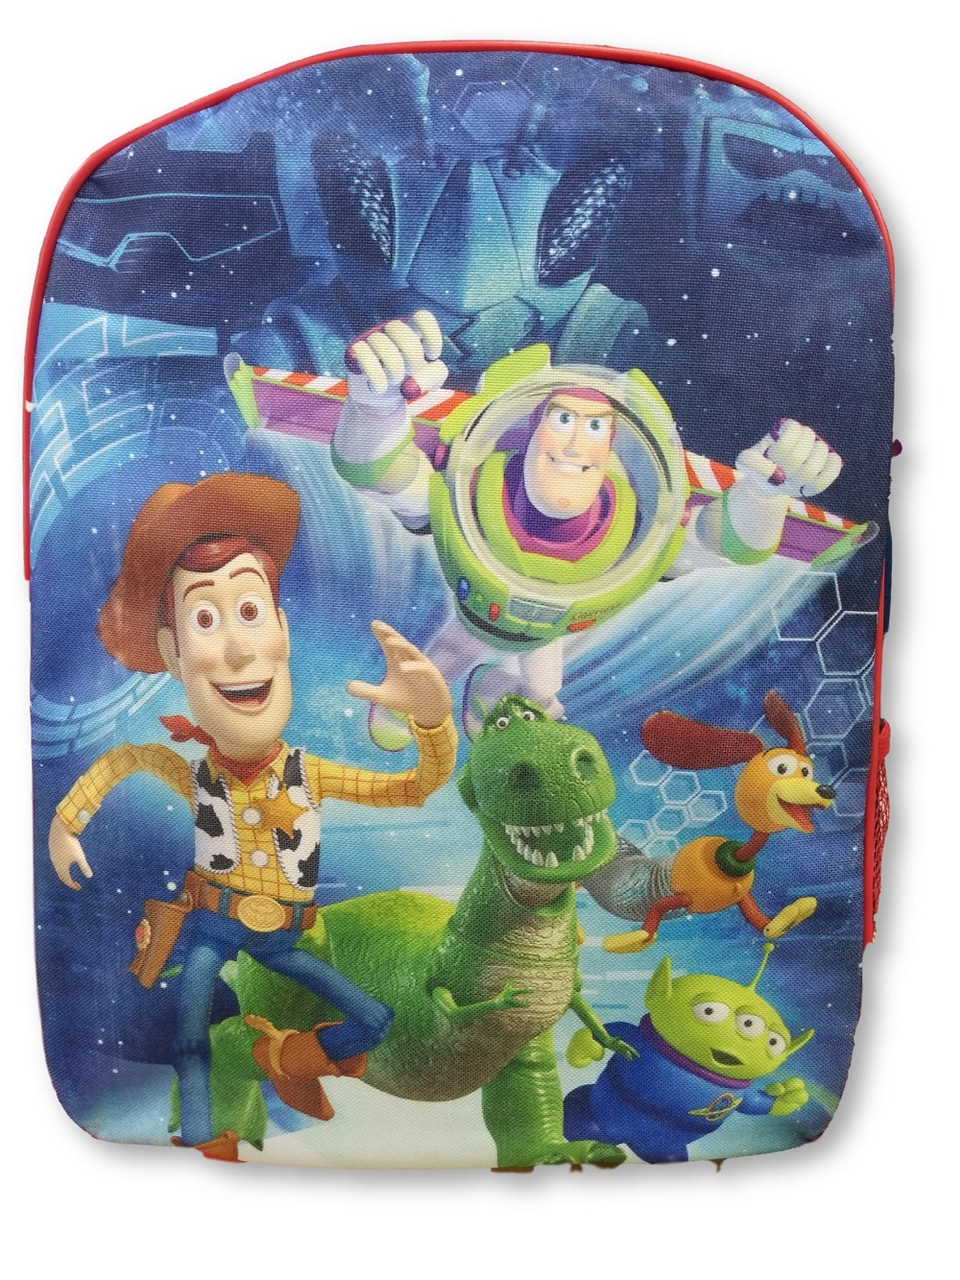 Backpack - Toy Story - Large 15 Inch - Screen Printed No Pockets